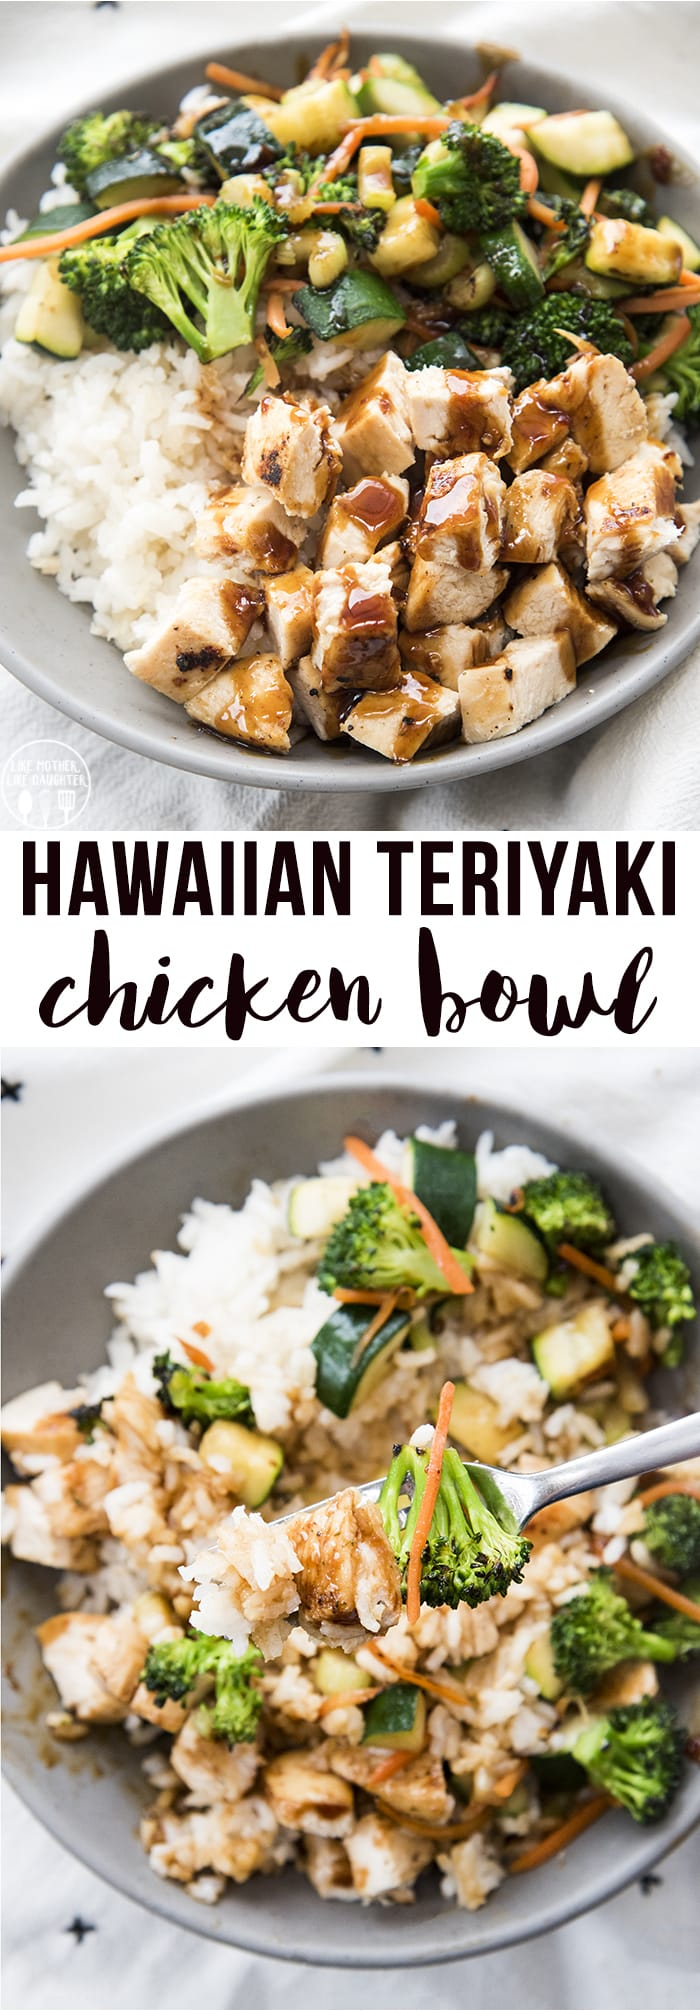 Hawaiian Teriyaki Chicken Bowls are delicious rice, chicken and veggie bowls with coconut rice, sauteed vegetables, and chicken topped with a sweet and spicy homemade teriyaki sauce!